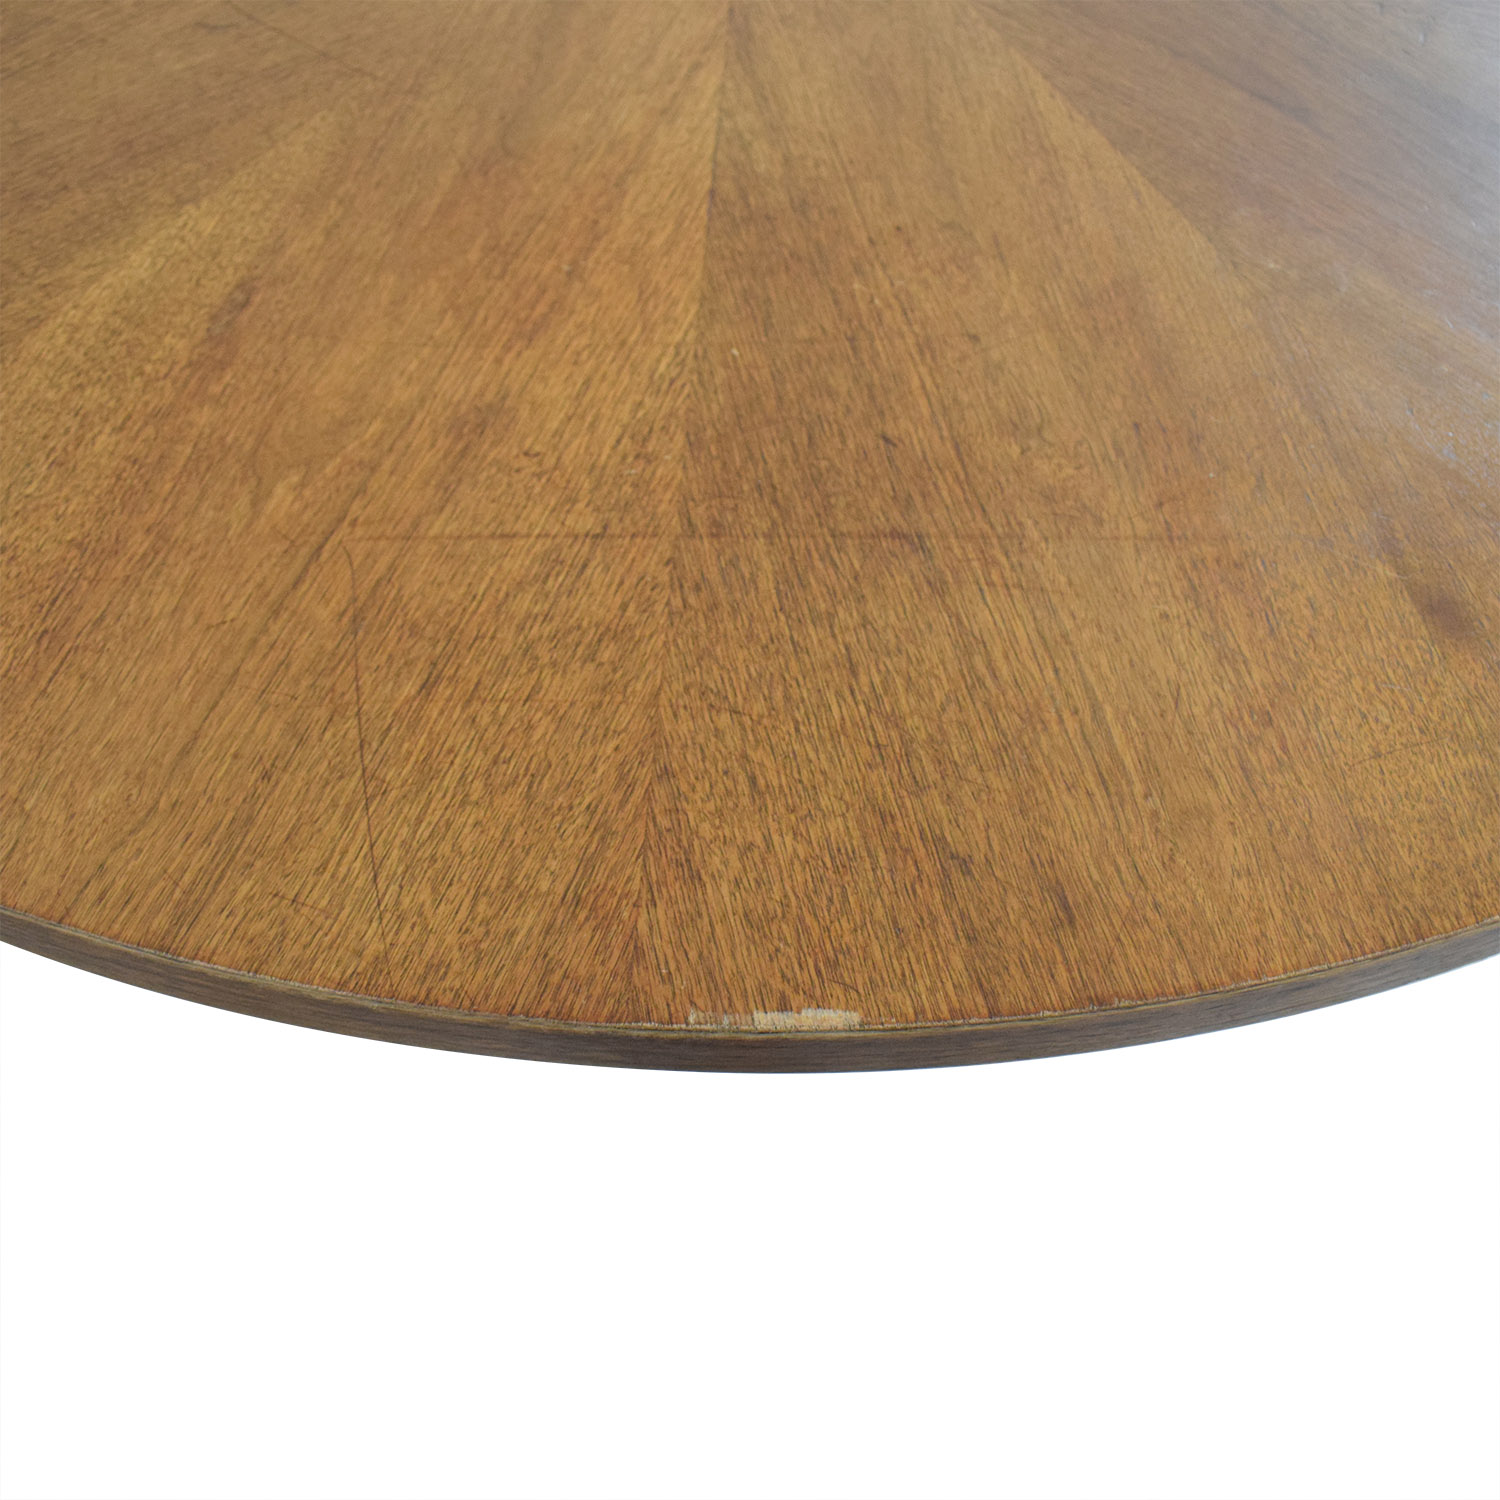 Large Round Conference Table Tables